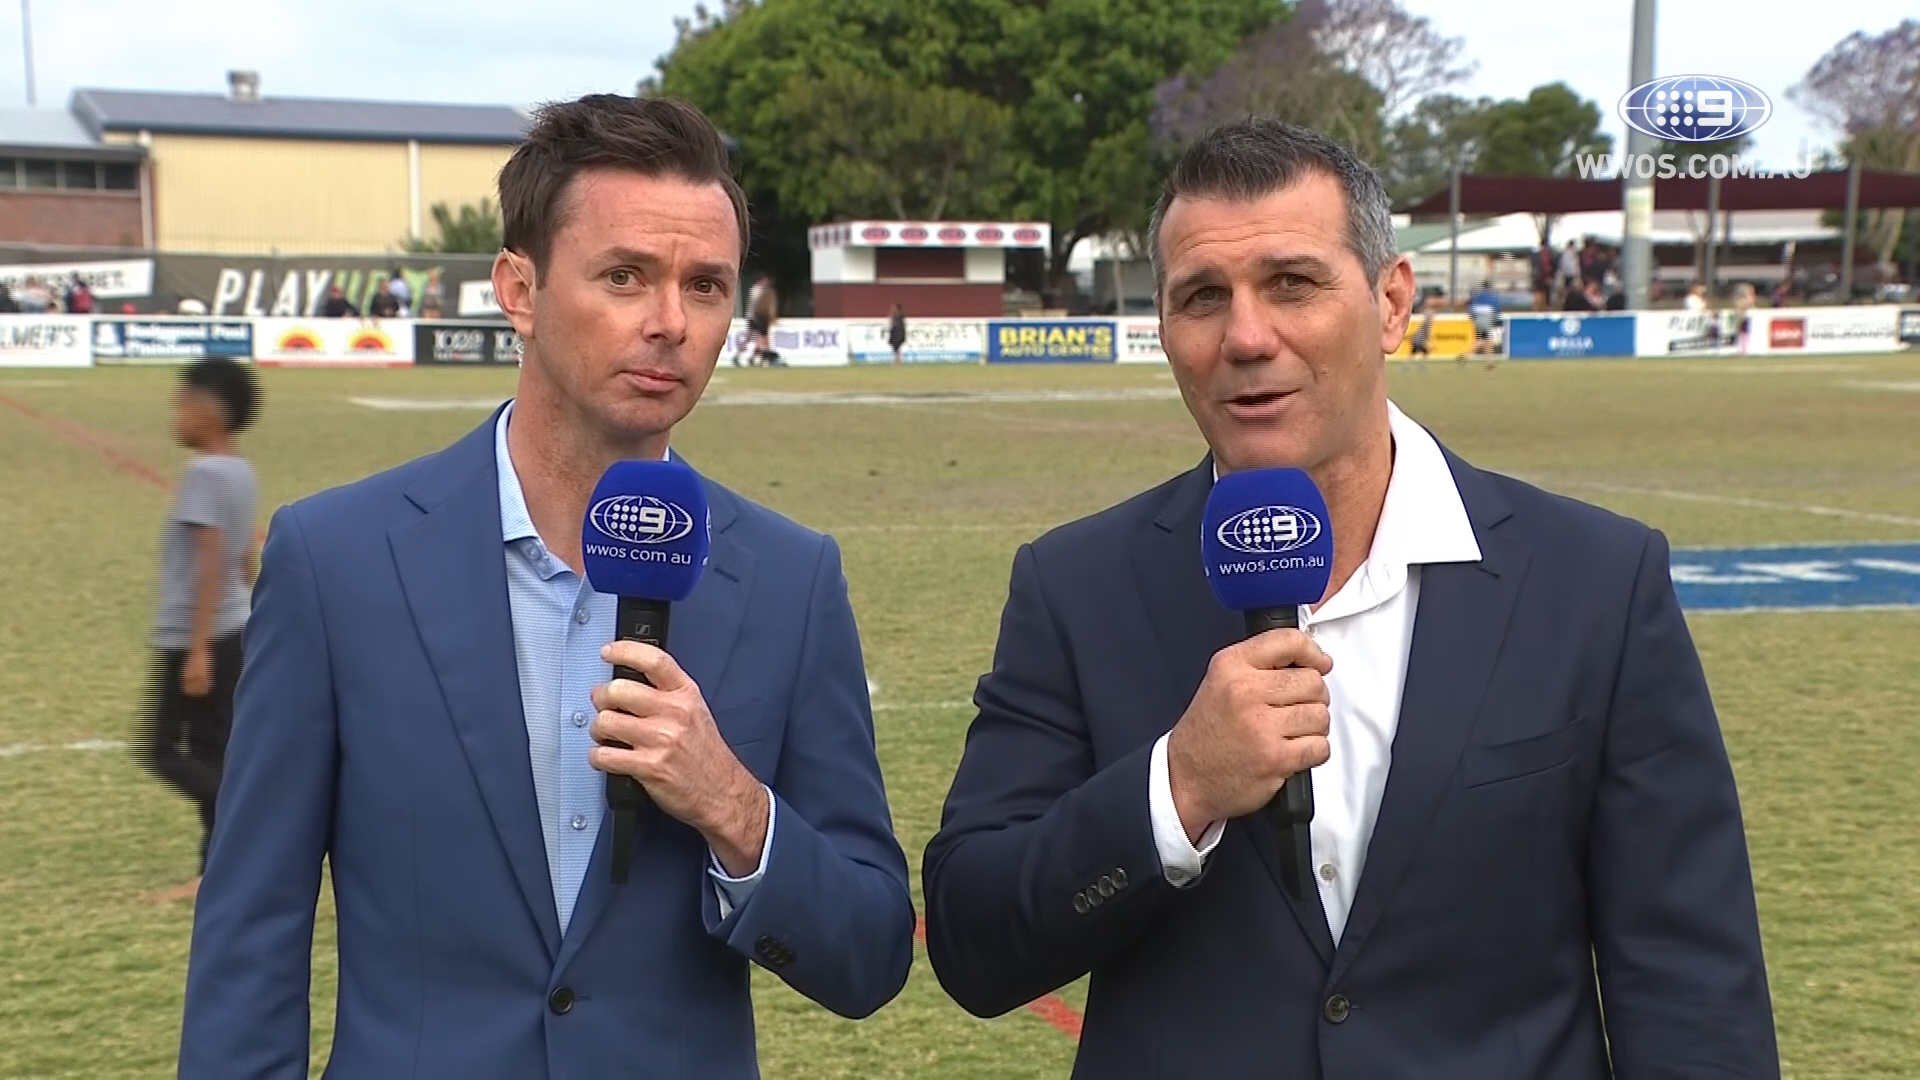 QRL Finals: Highlights and Analysis from the Bears win over the Magpies